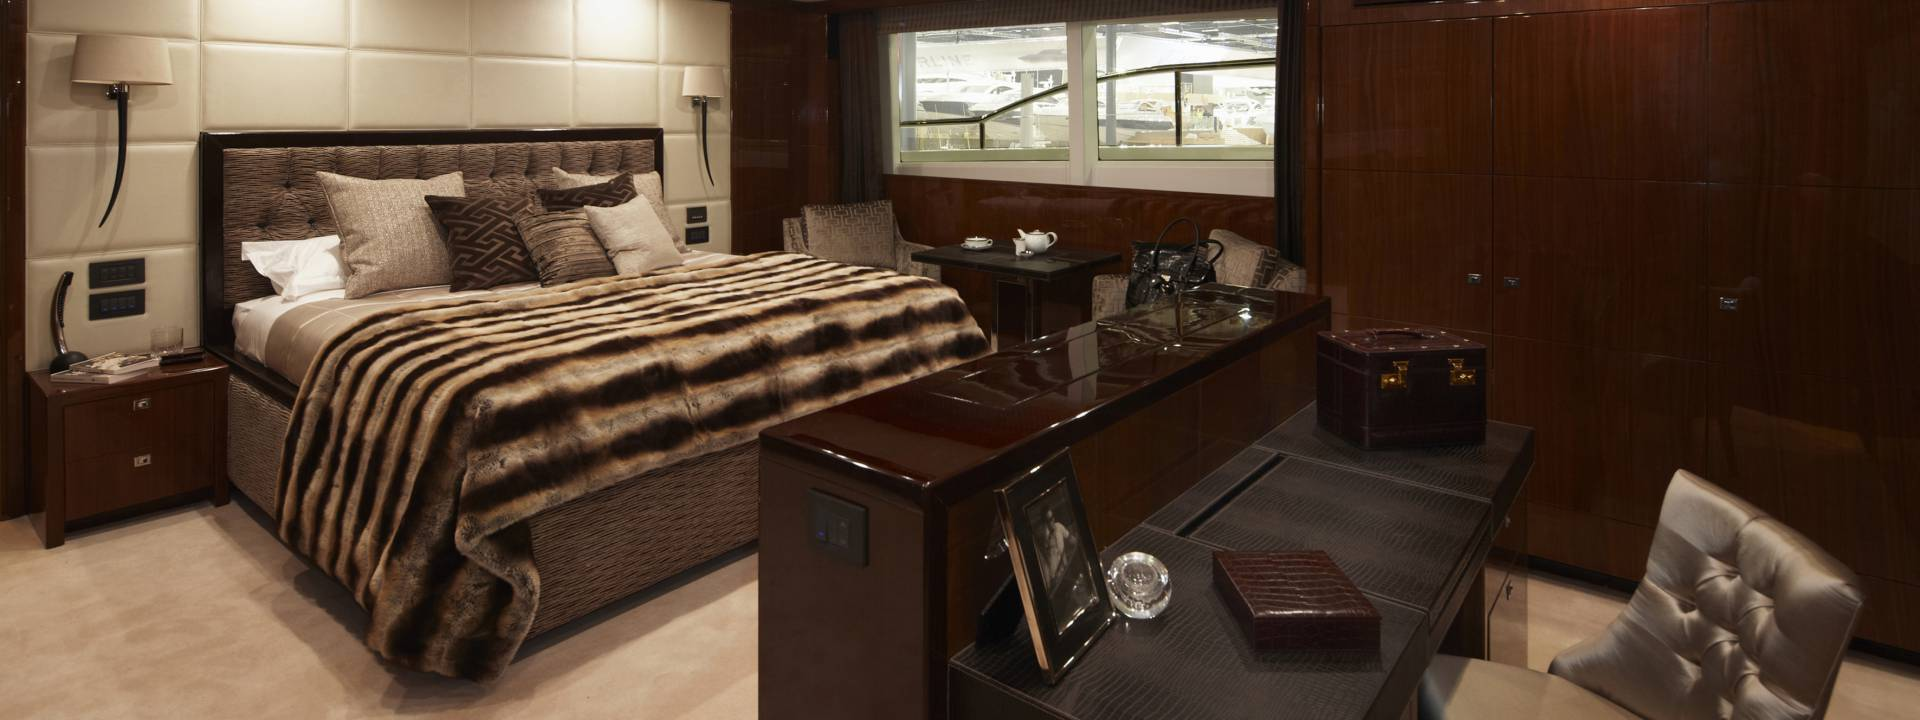 Luxury Yacht Bedroom, Yvette Taylor London